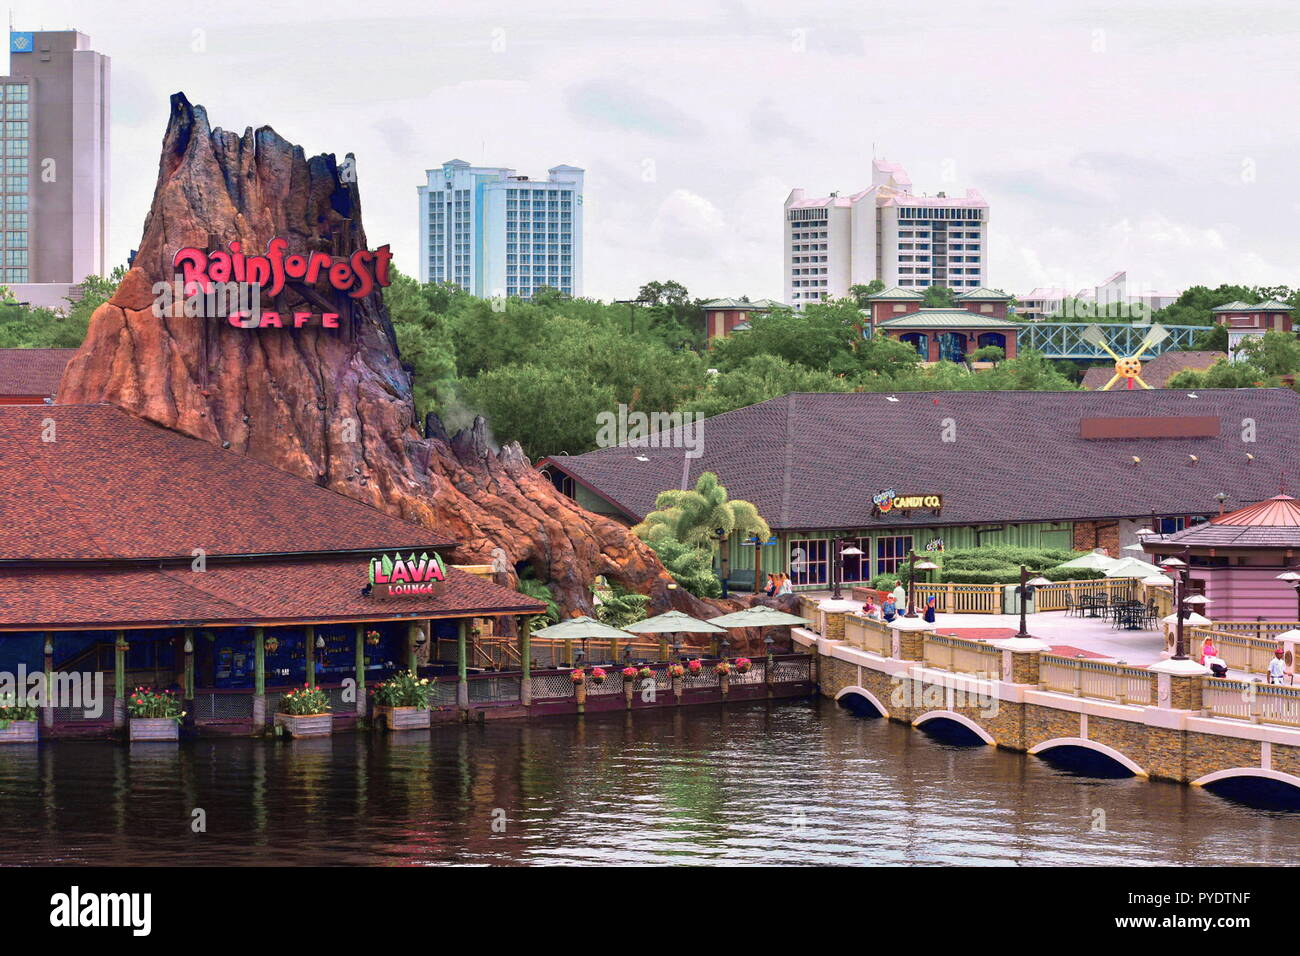 Orlando Florida Usa July 29 2018 Disney Springs Waterview